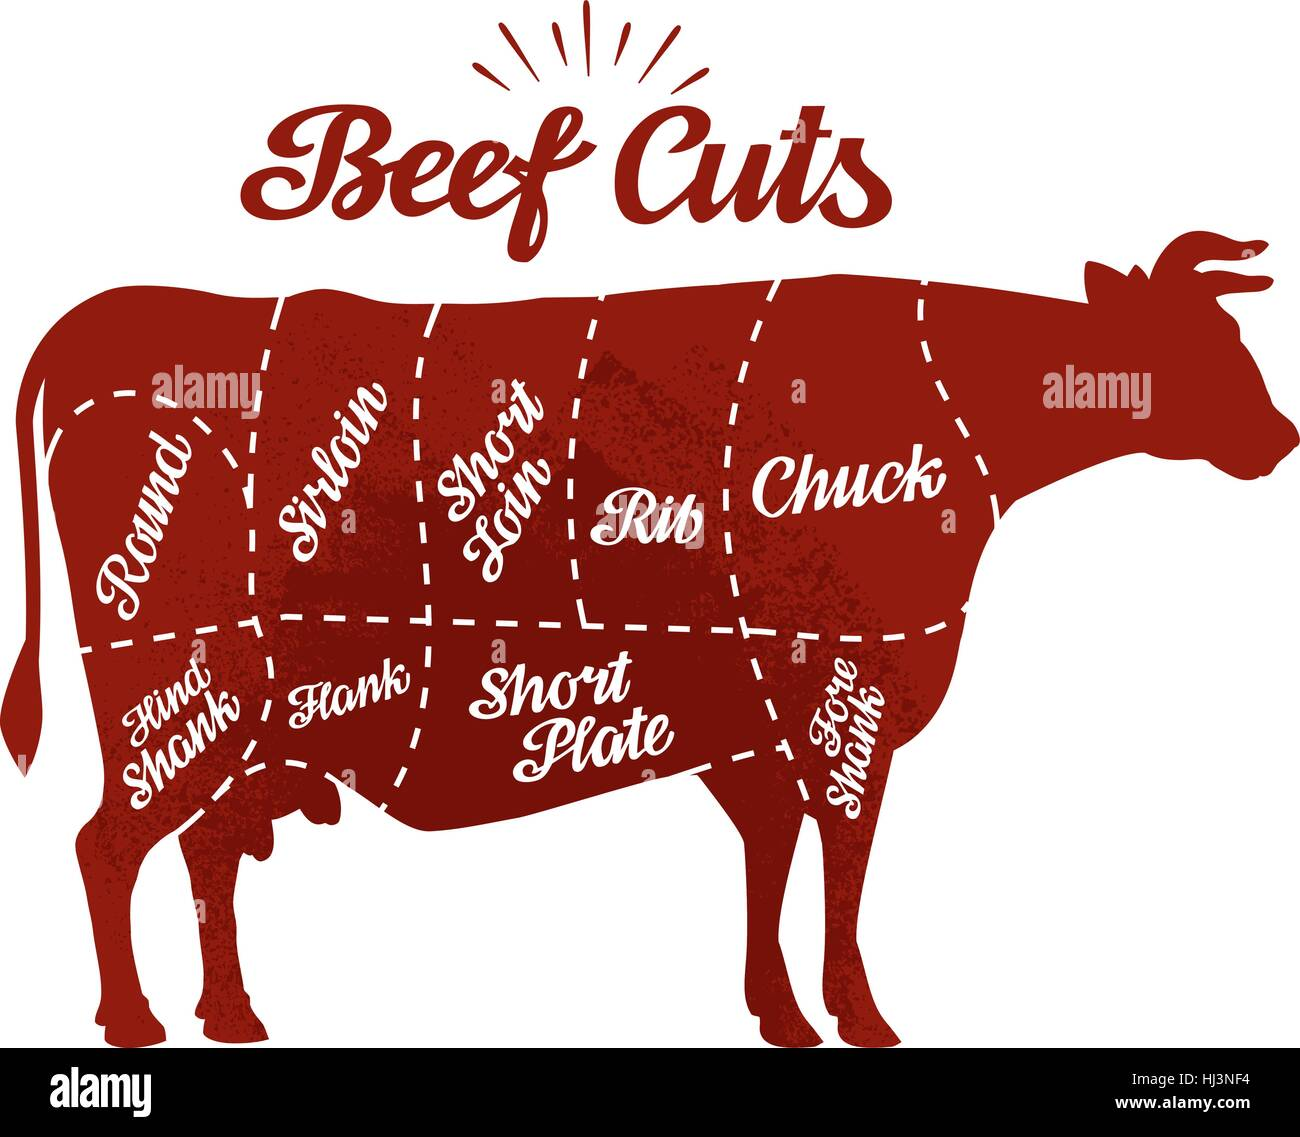 Butcher shop. Beef cuts. Vector illustration - Stock Image